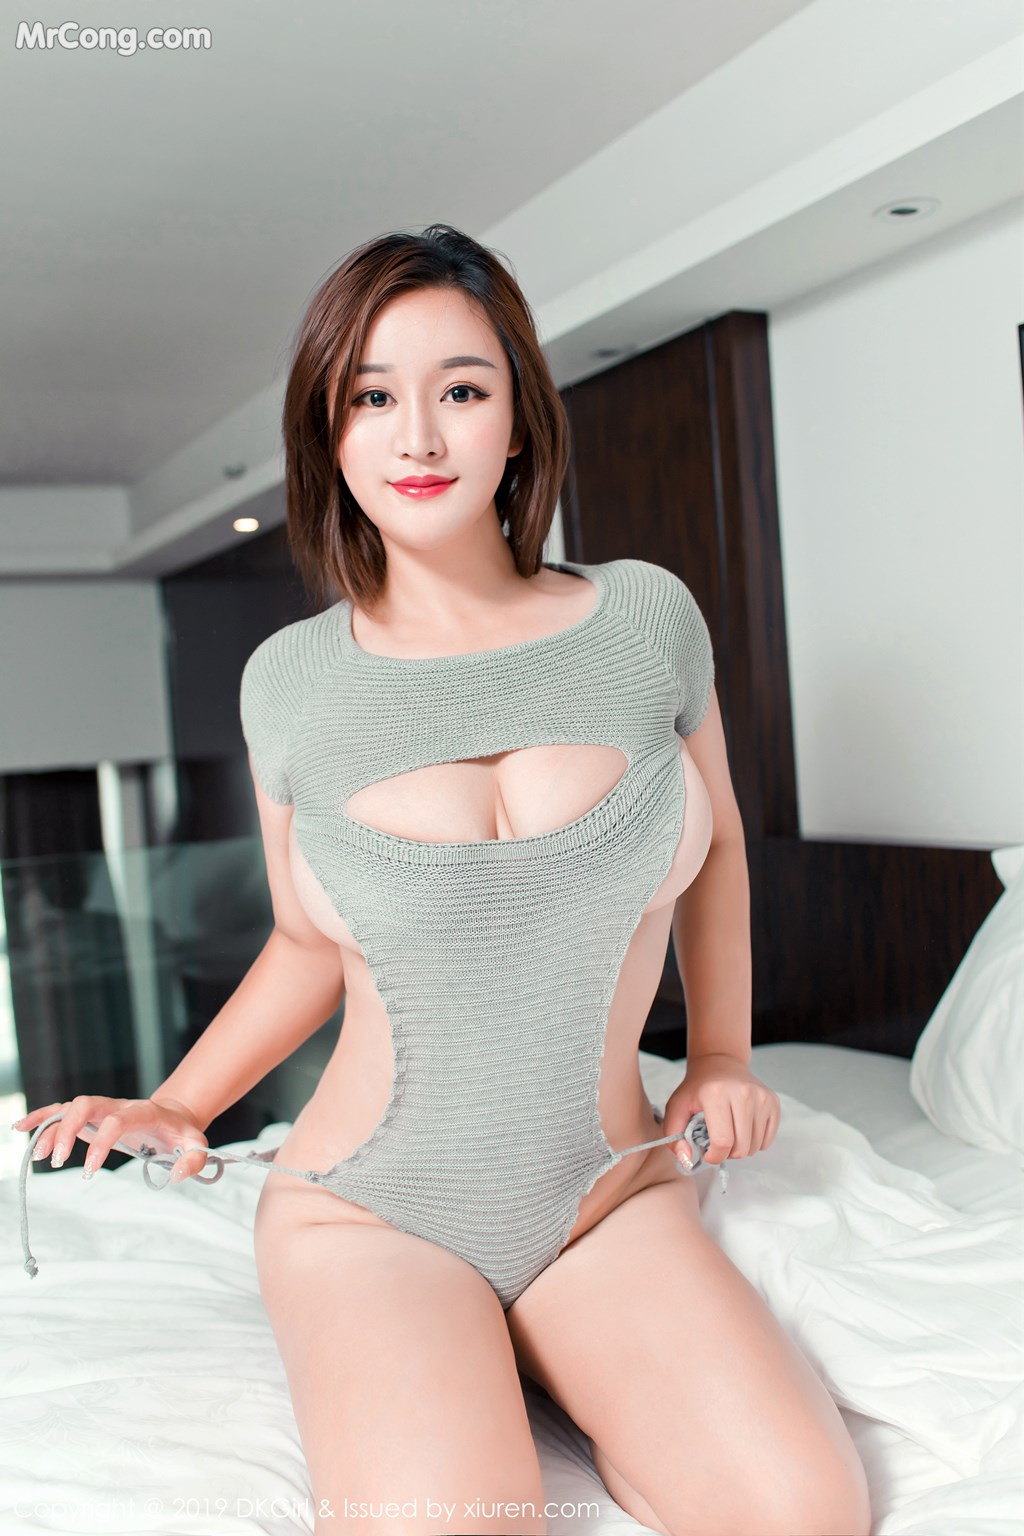 Image DKGirl-Vol.113-ber-MrCong.com-028 in post DKGirl Vol.113: 潘琳琳ber (44 ảnh)